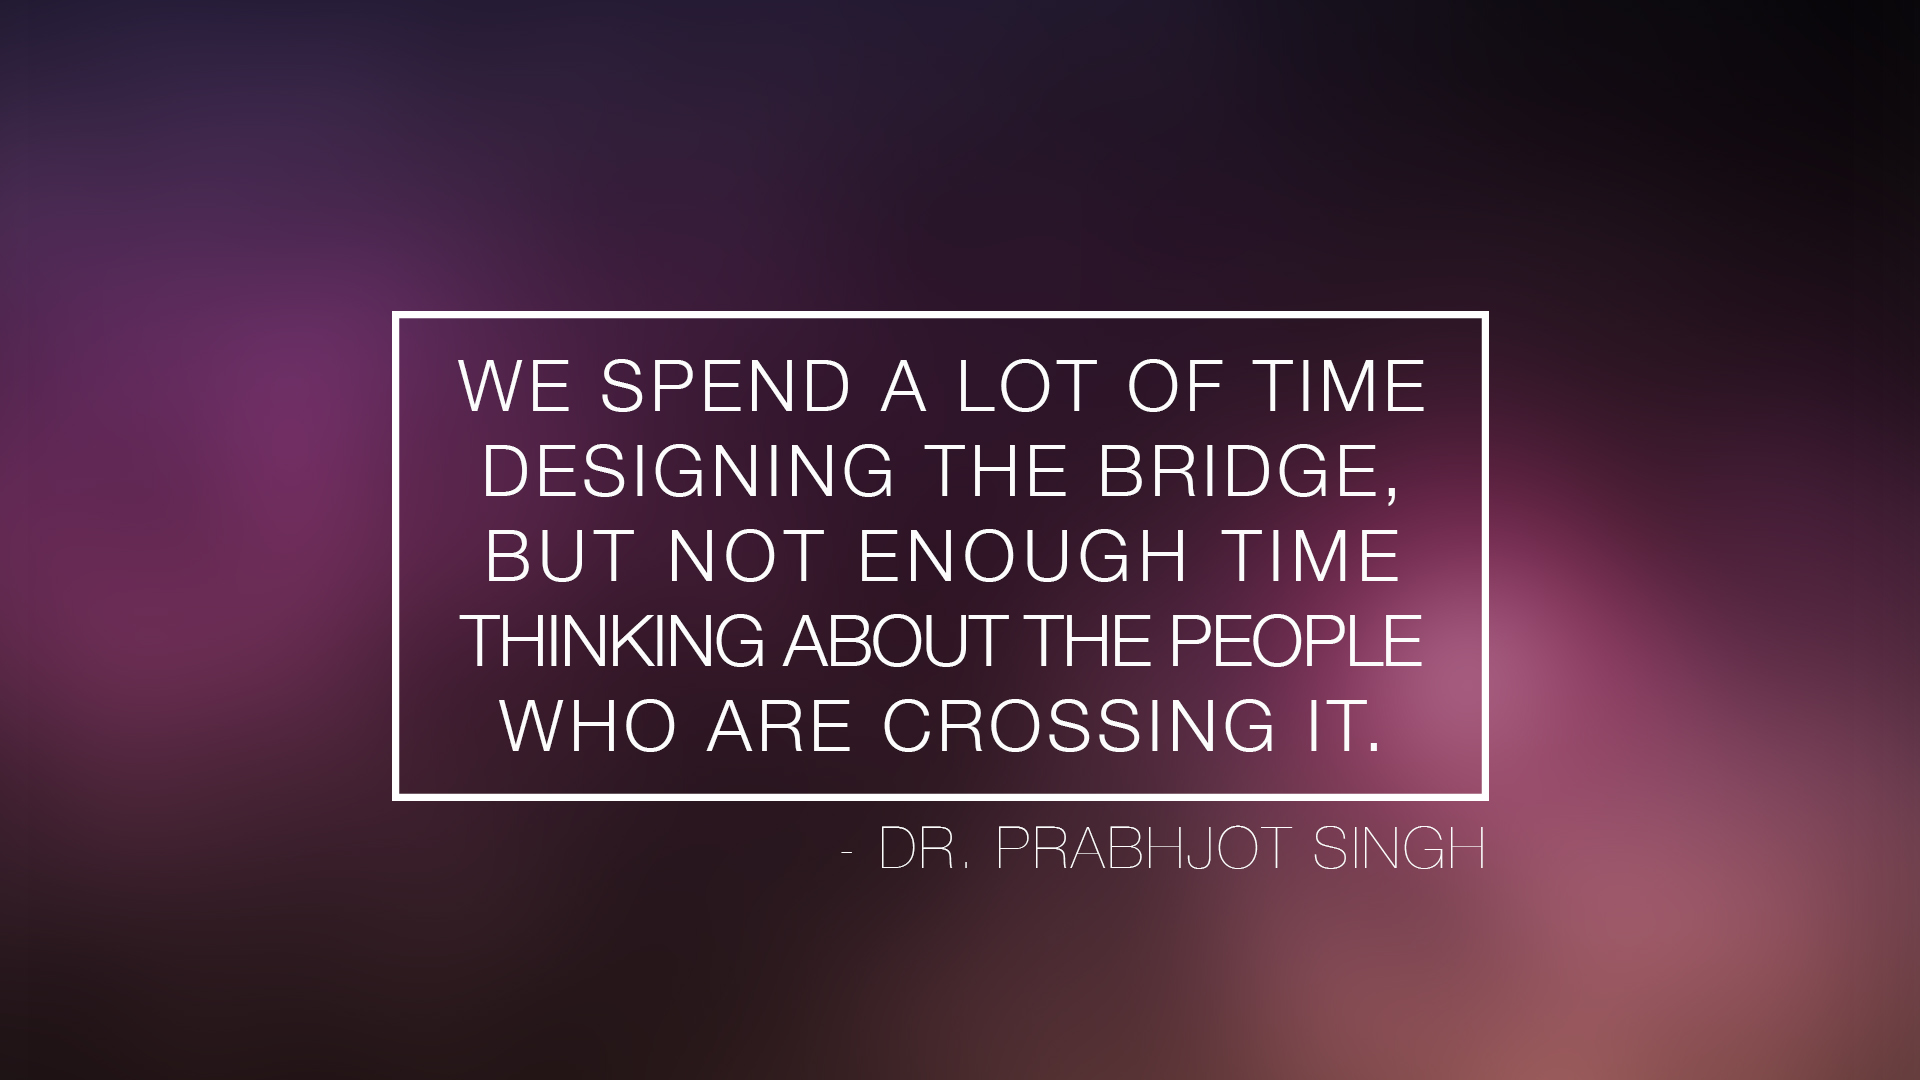 We spend a lot of time designing the bridge, but not enough time thinking about the people who are crossing it. - Dr. Prabhjot Singh